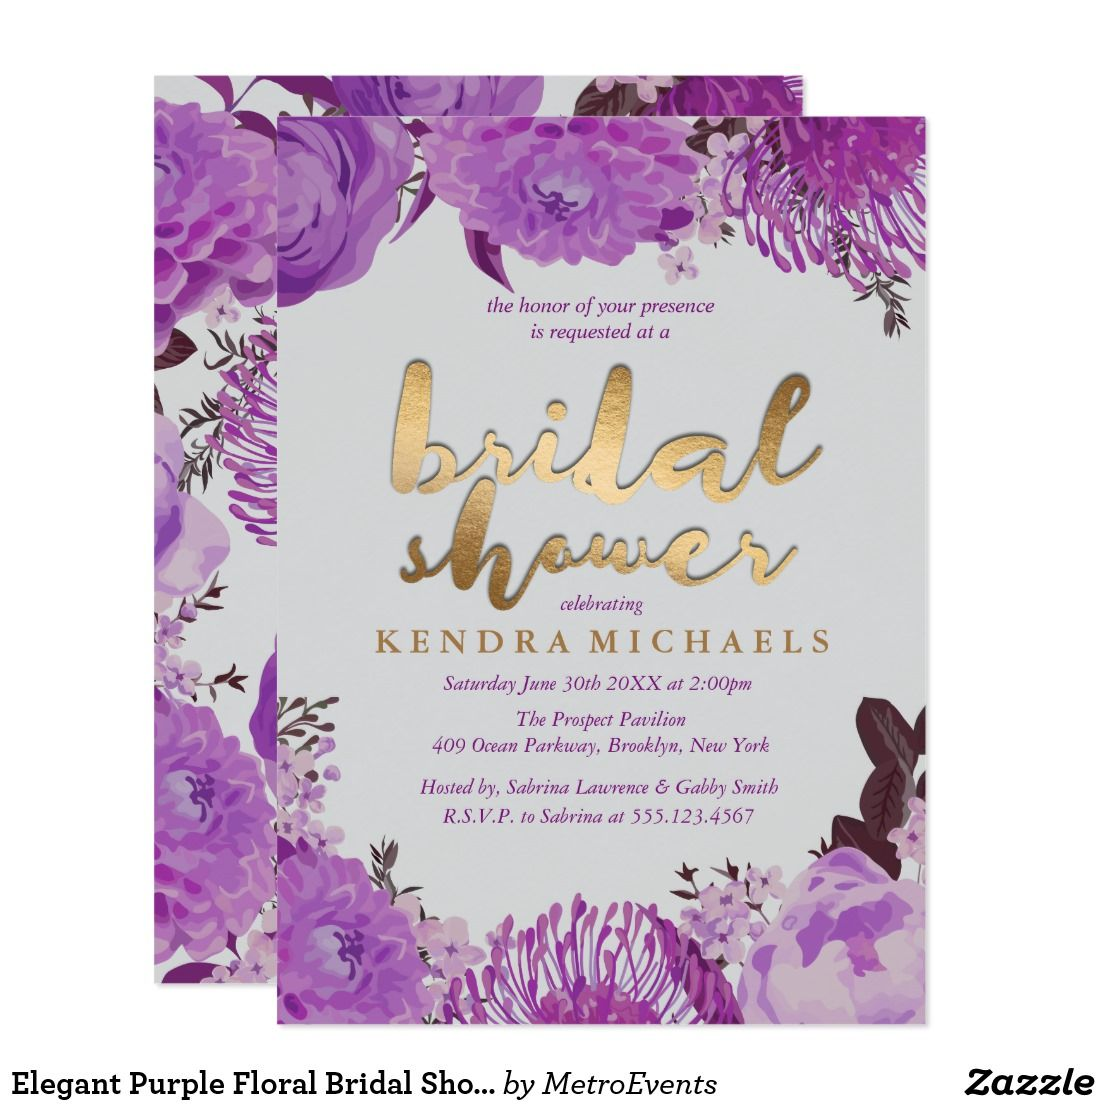 Elegant Purple Floral Bridal Shower Invitations Floral Wedding